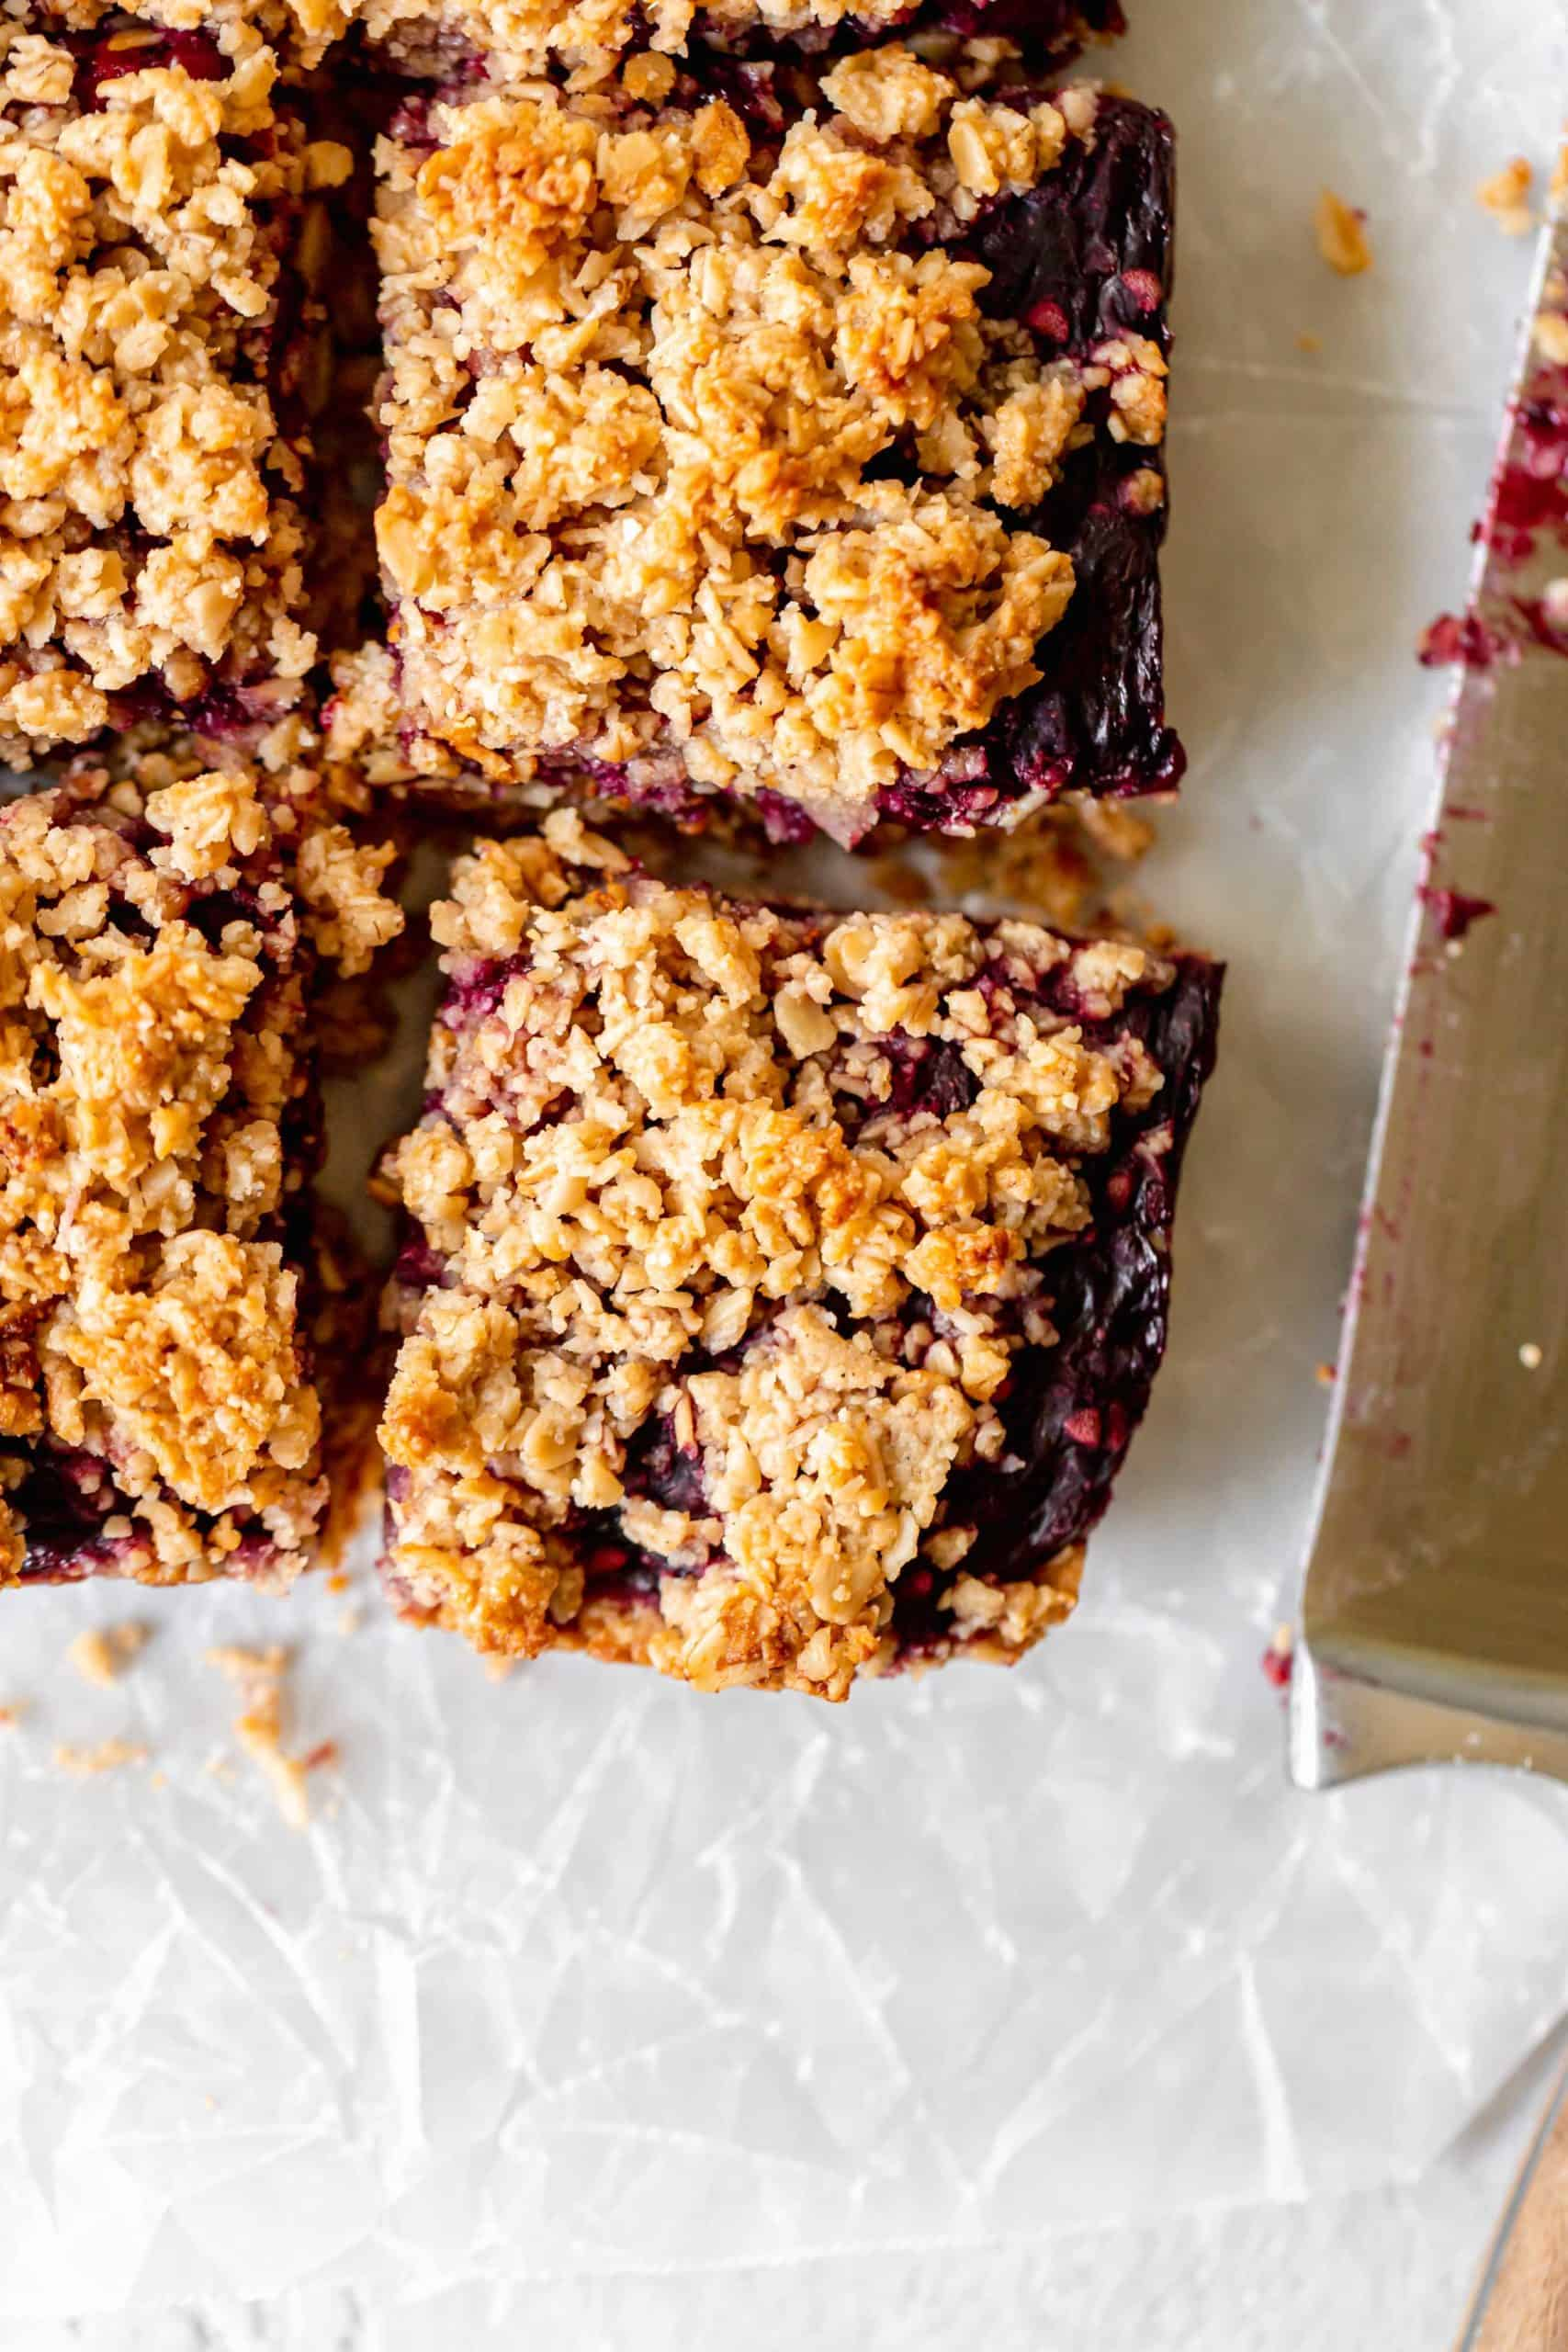 Healthy blackberry crumble bar on parchment paper